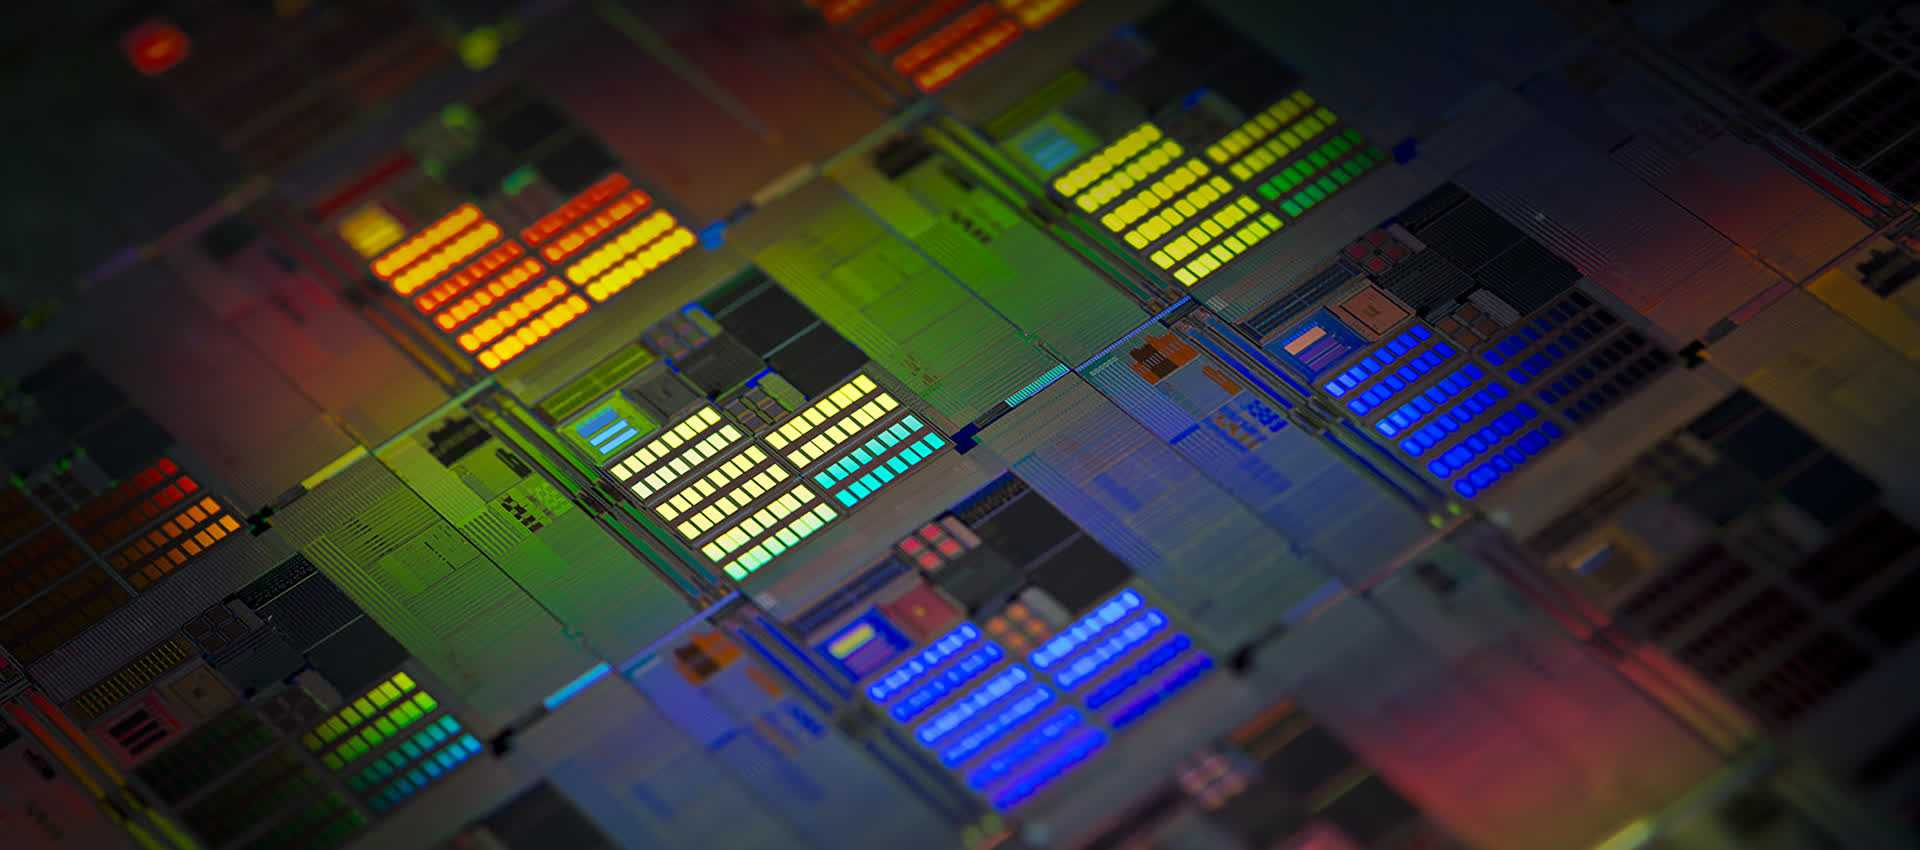 TSMC N4 node trial production will start a quarter sooner than expected, N3 node to be mass-produced in 2H 2022